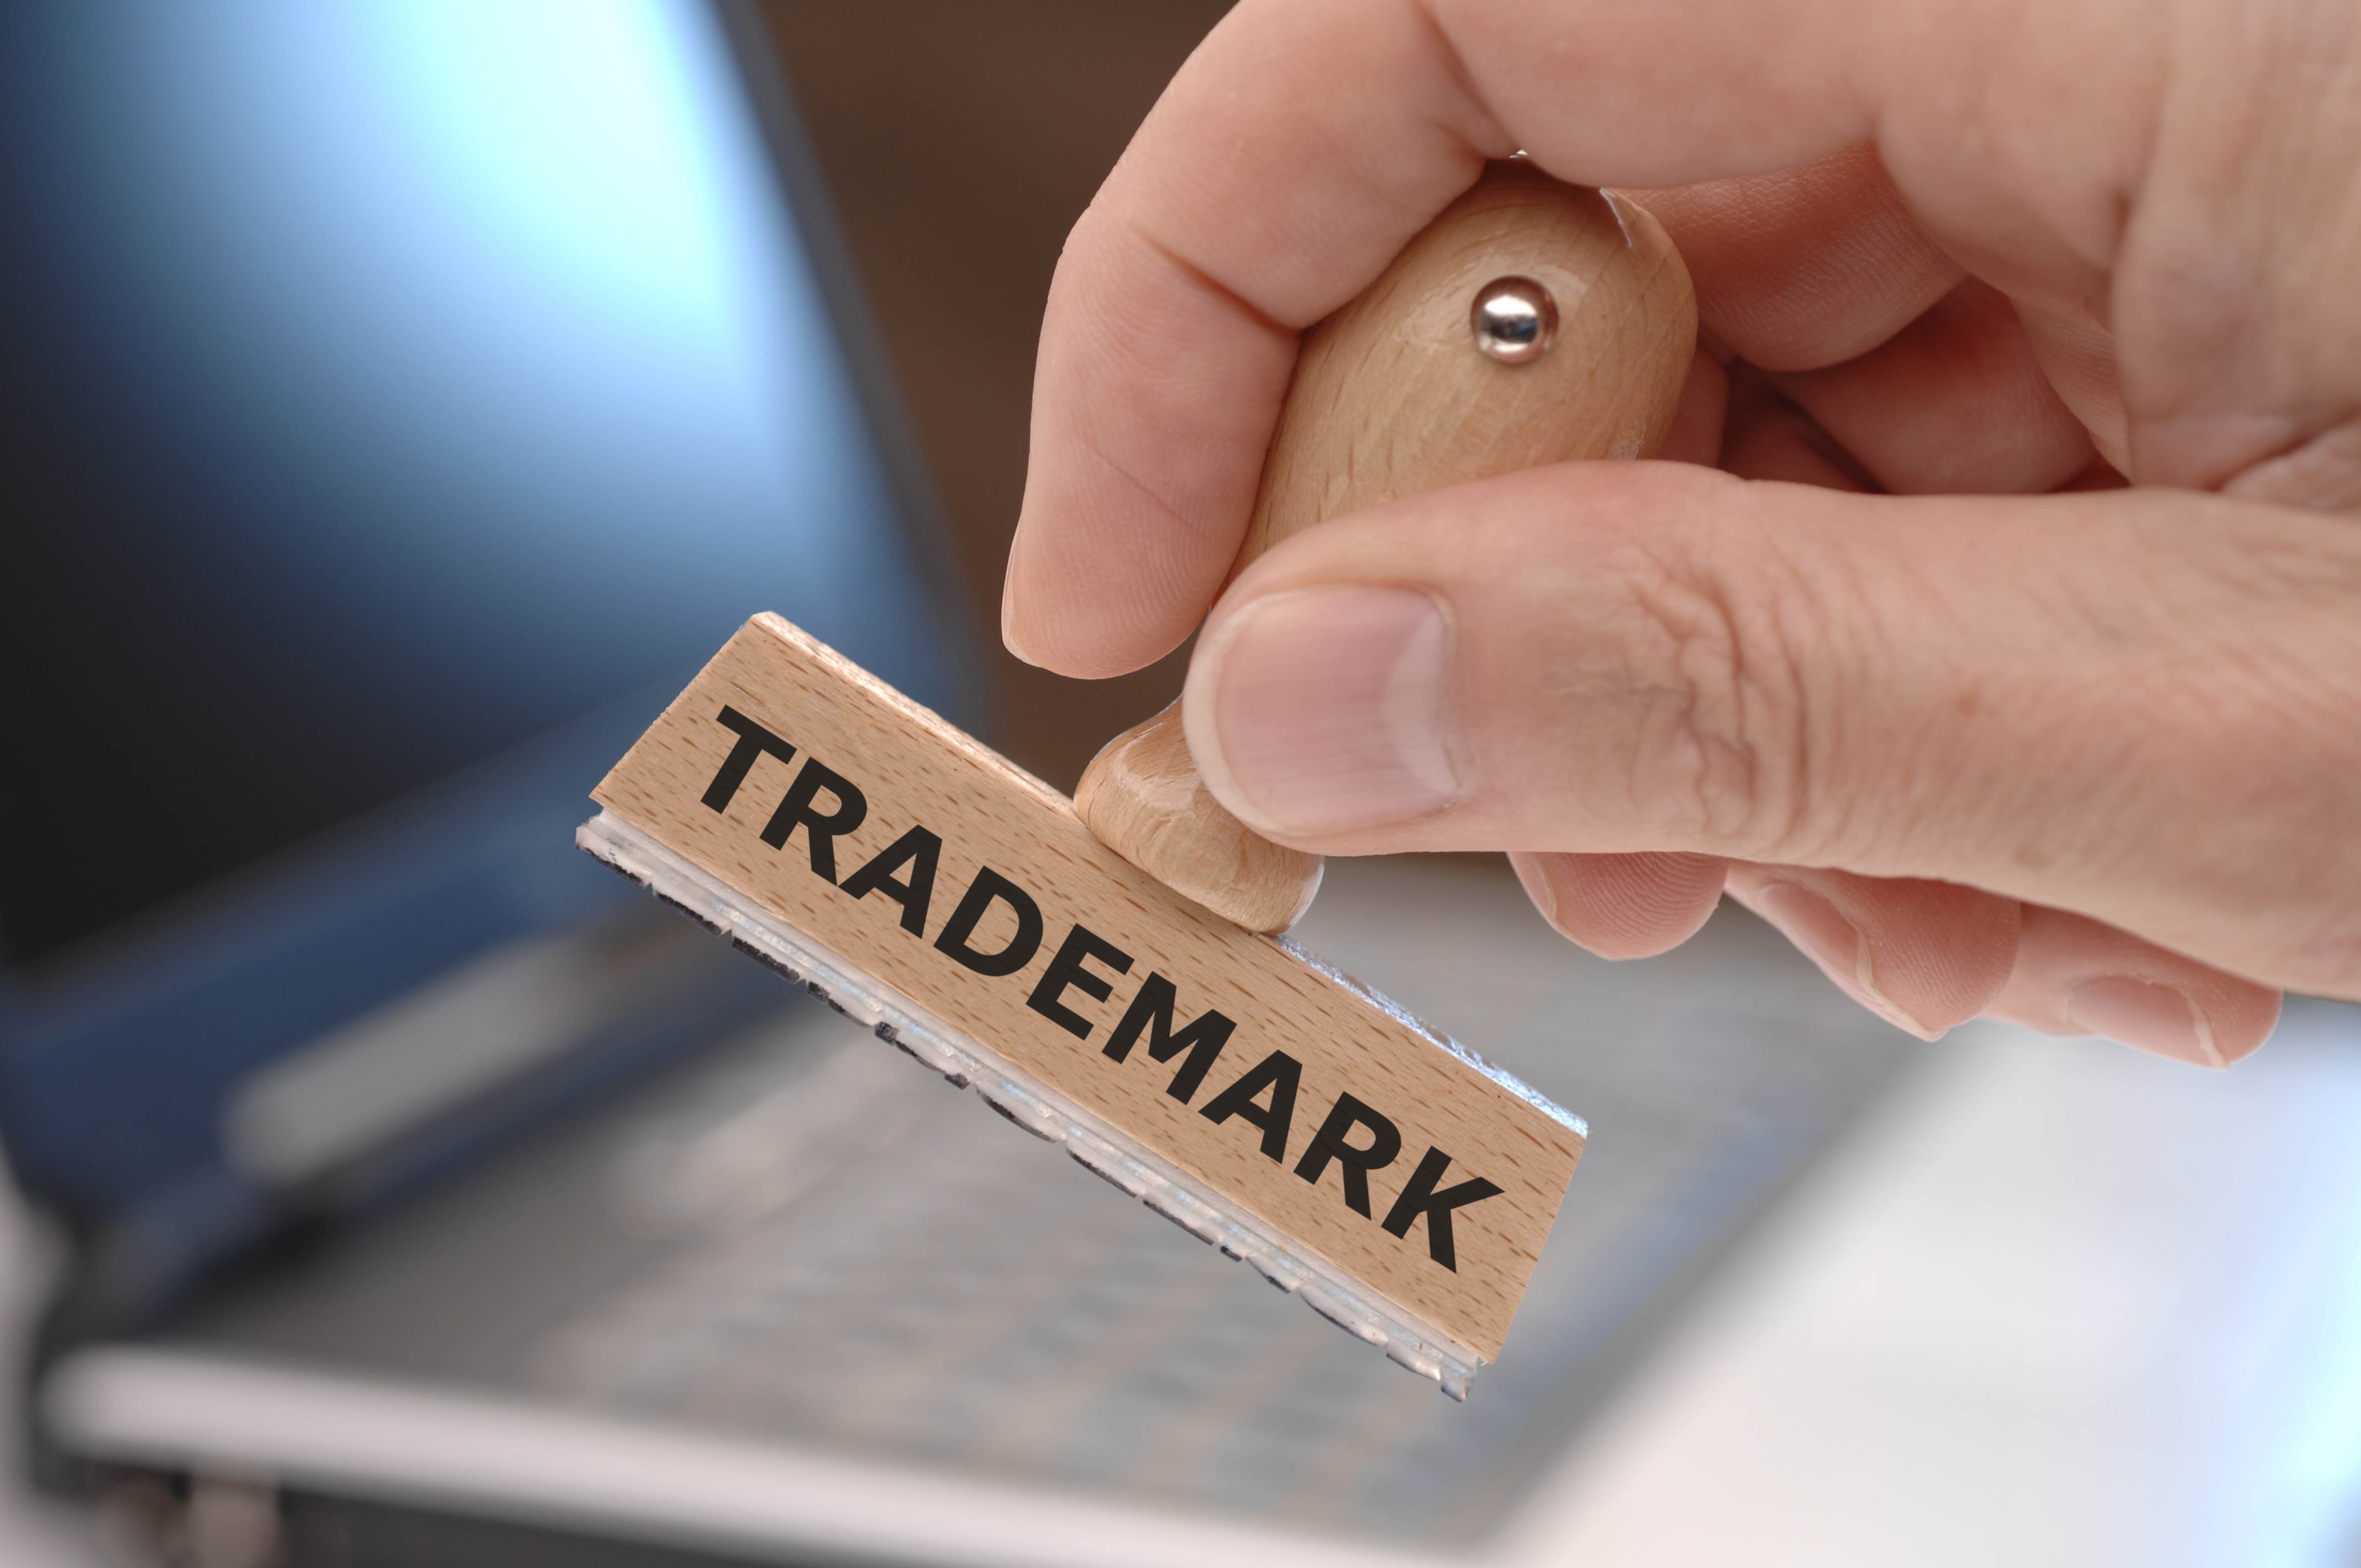 What Are The Sections To Fill In The Application Of Trademarking A Logo?